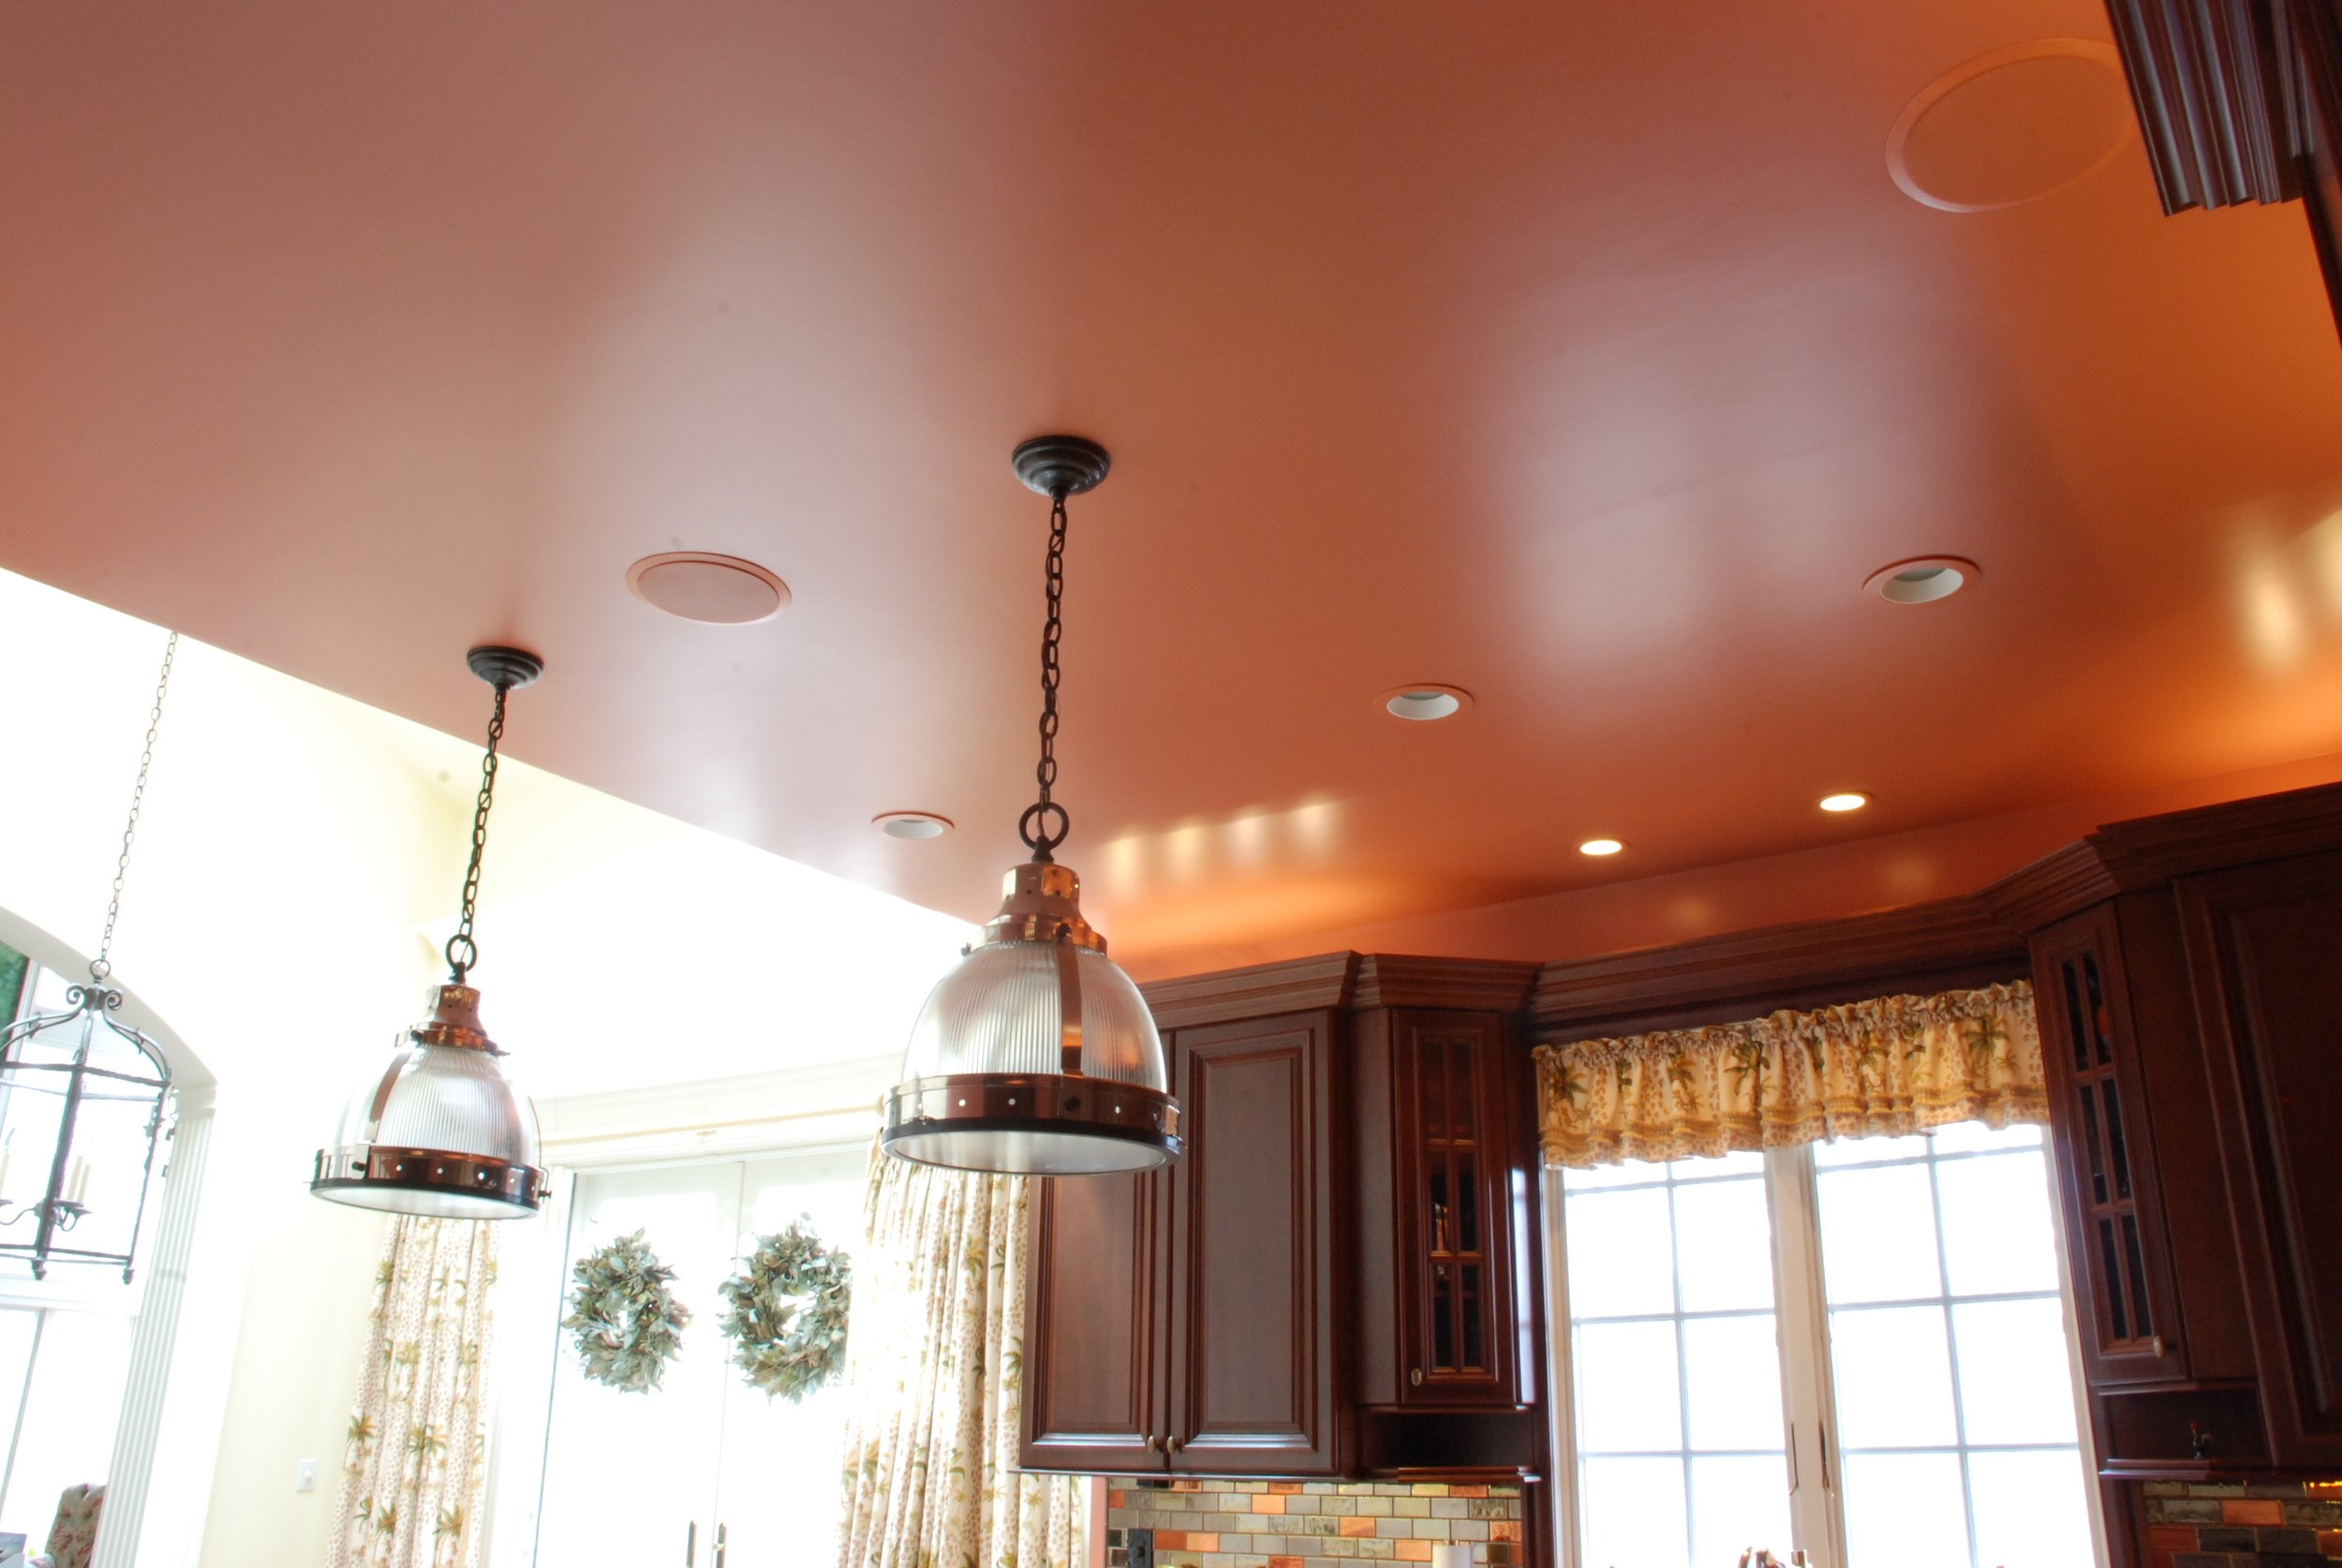 Satin walls, ceiling and trim by brush